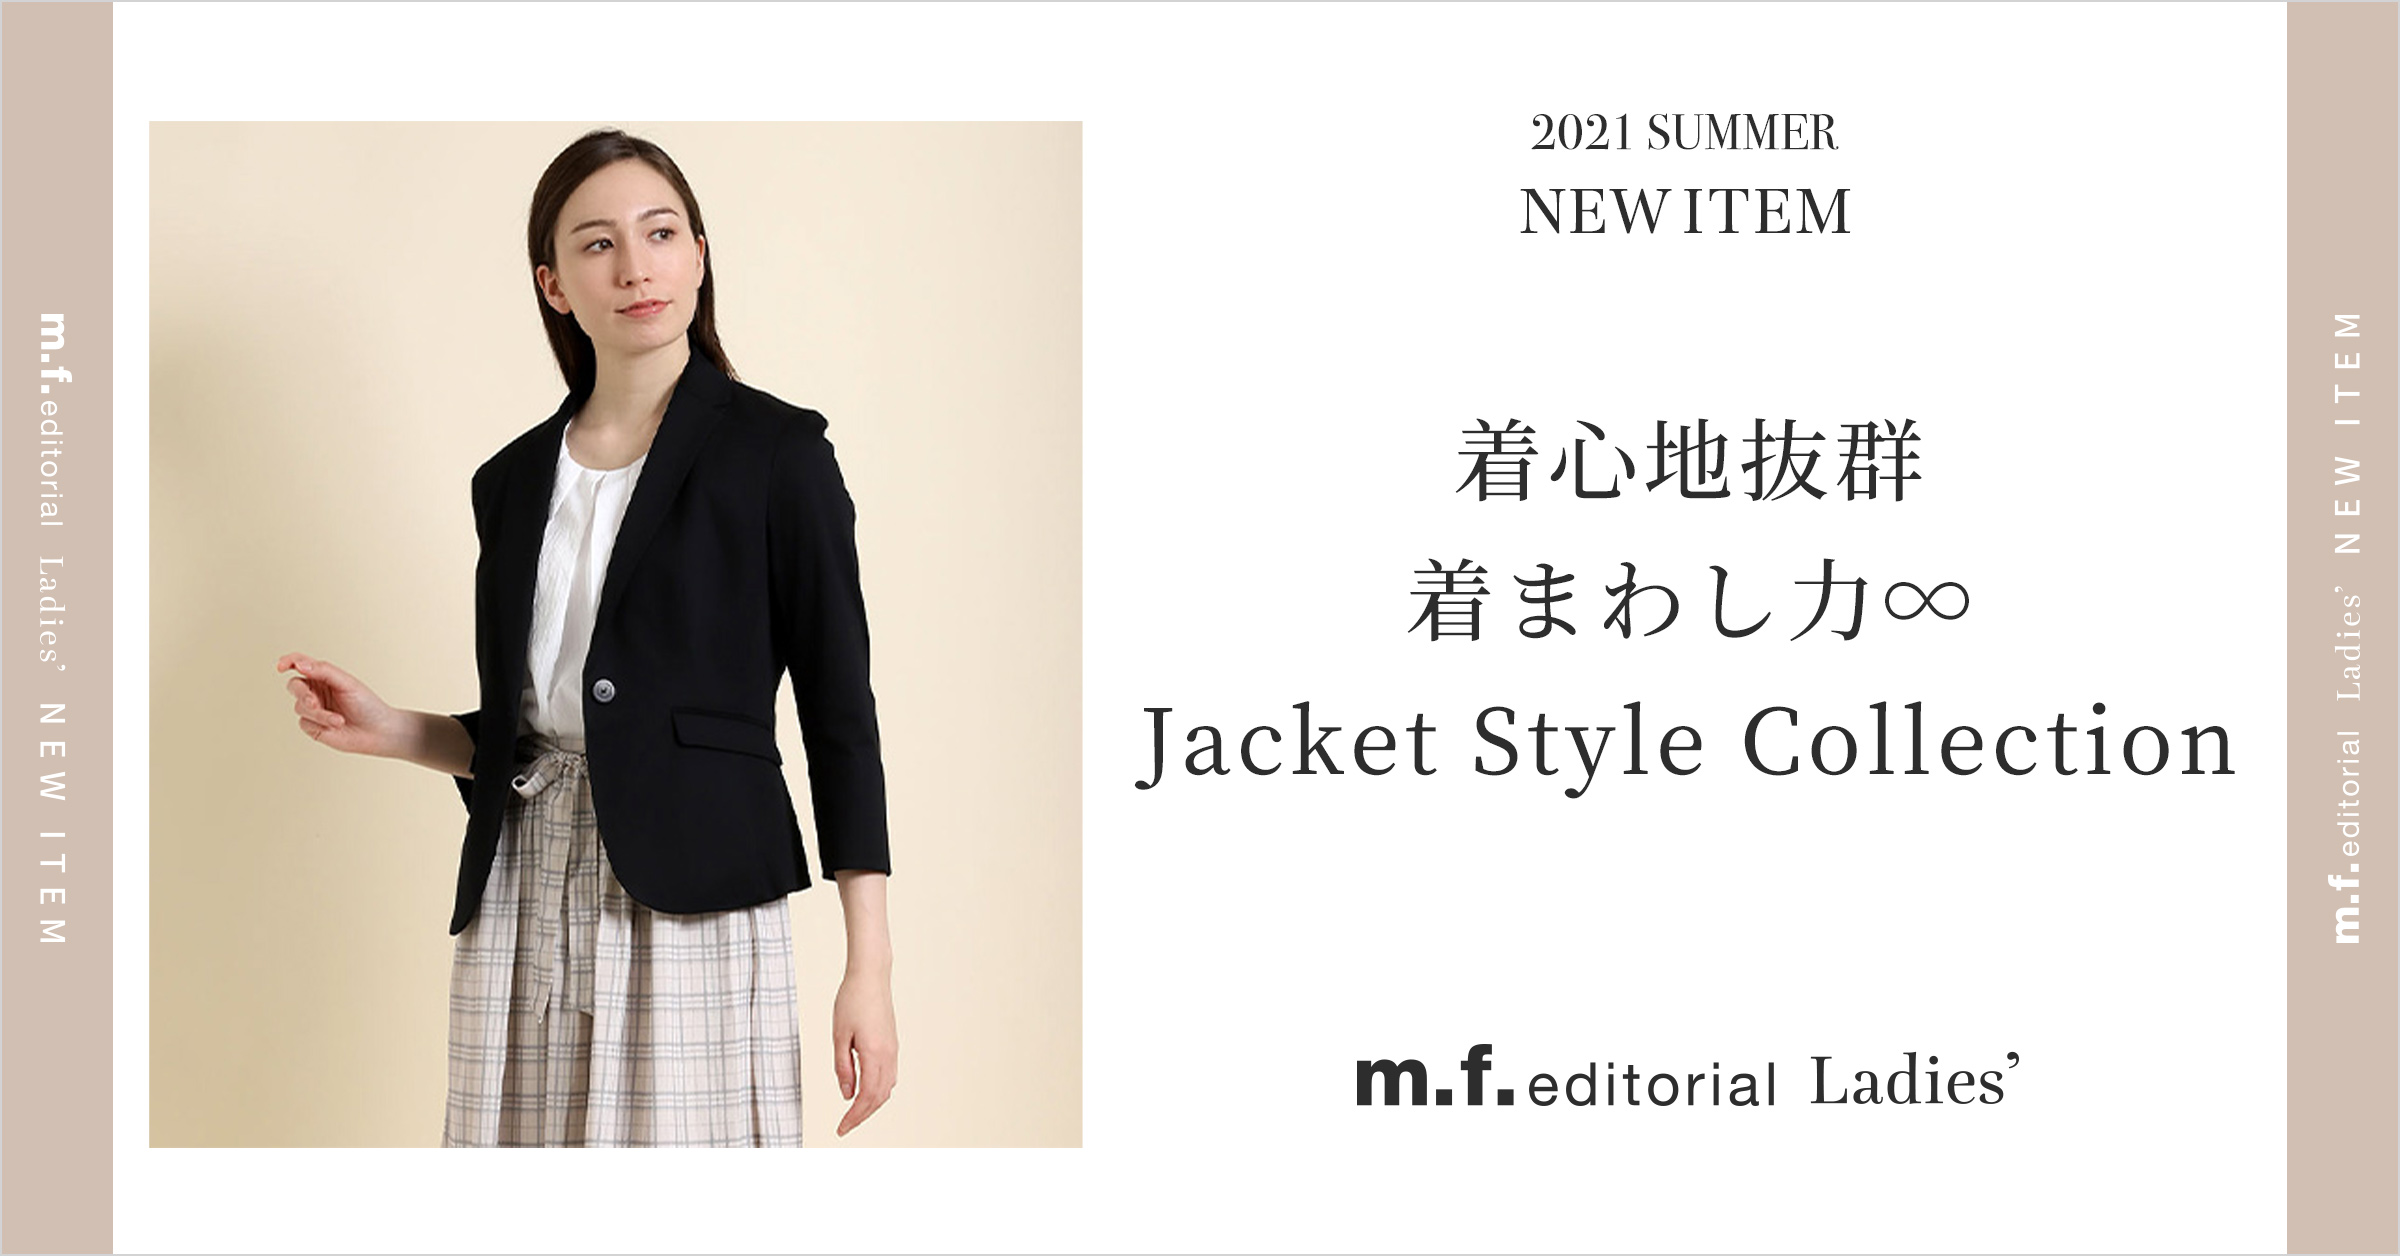 Jacket Style Collection